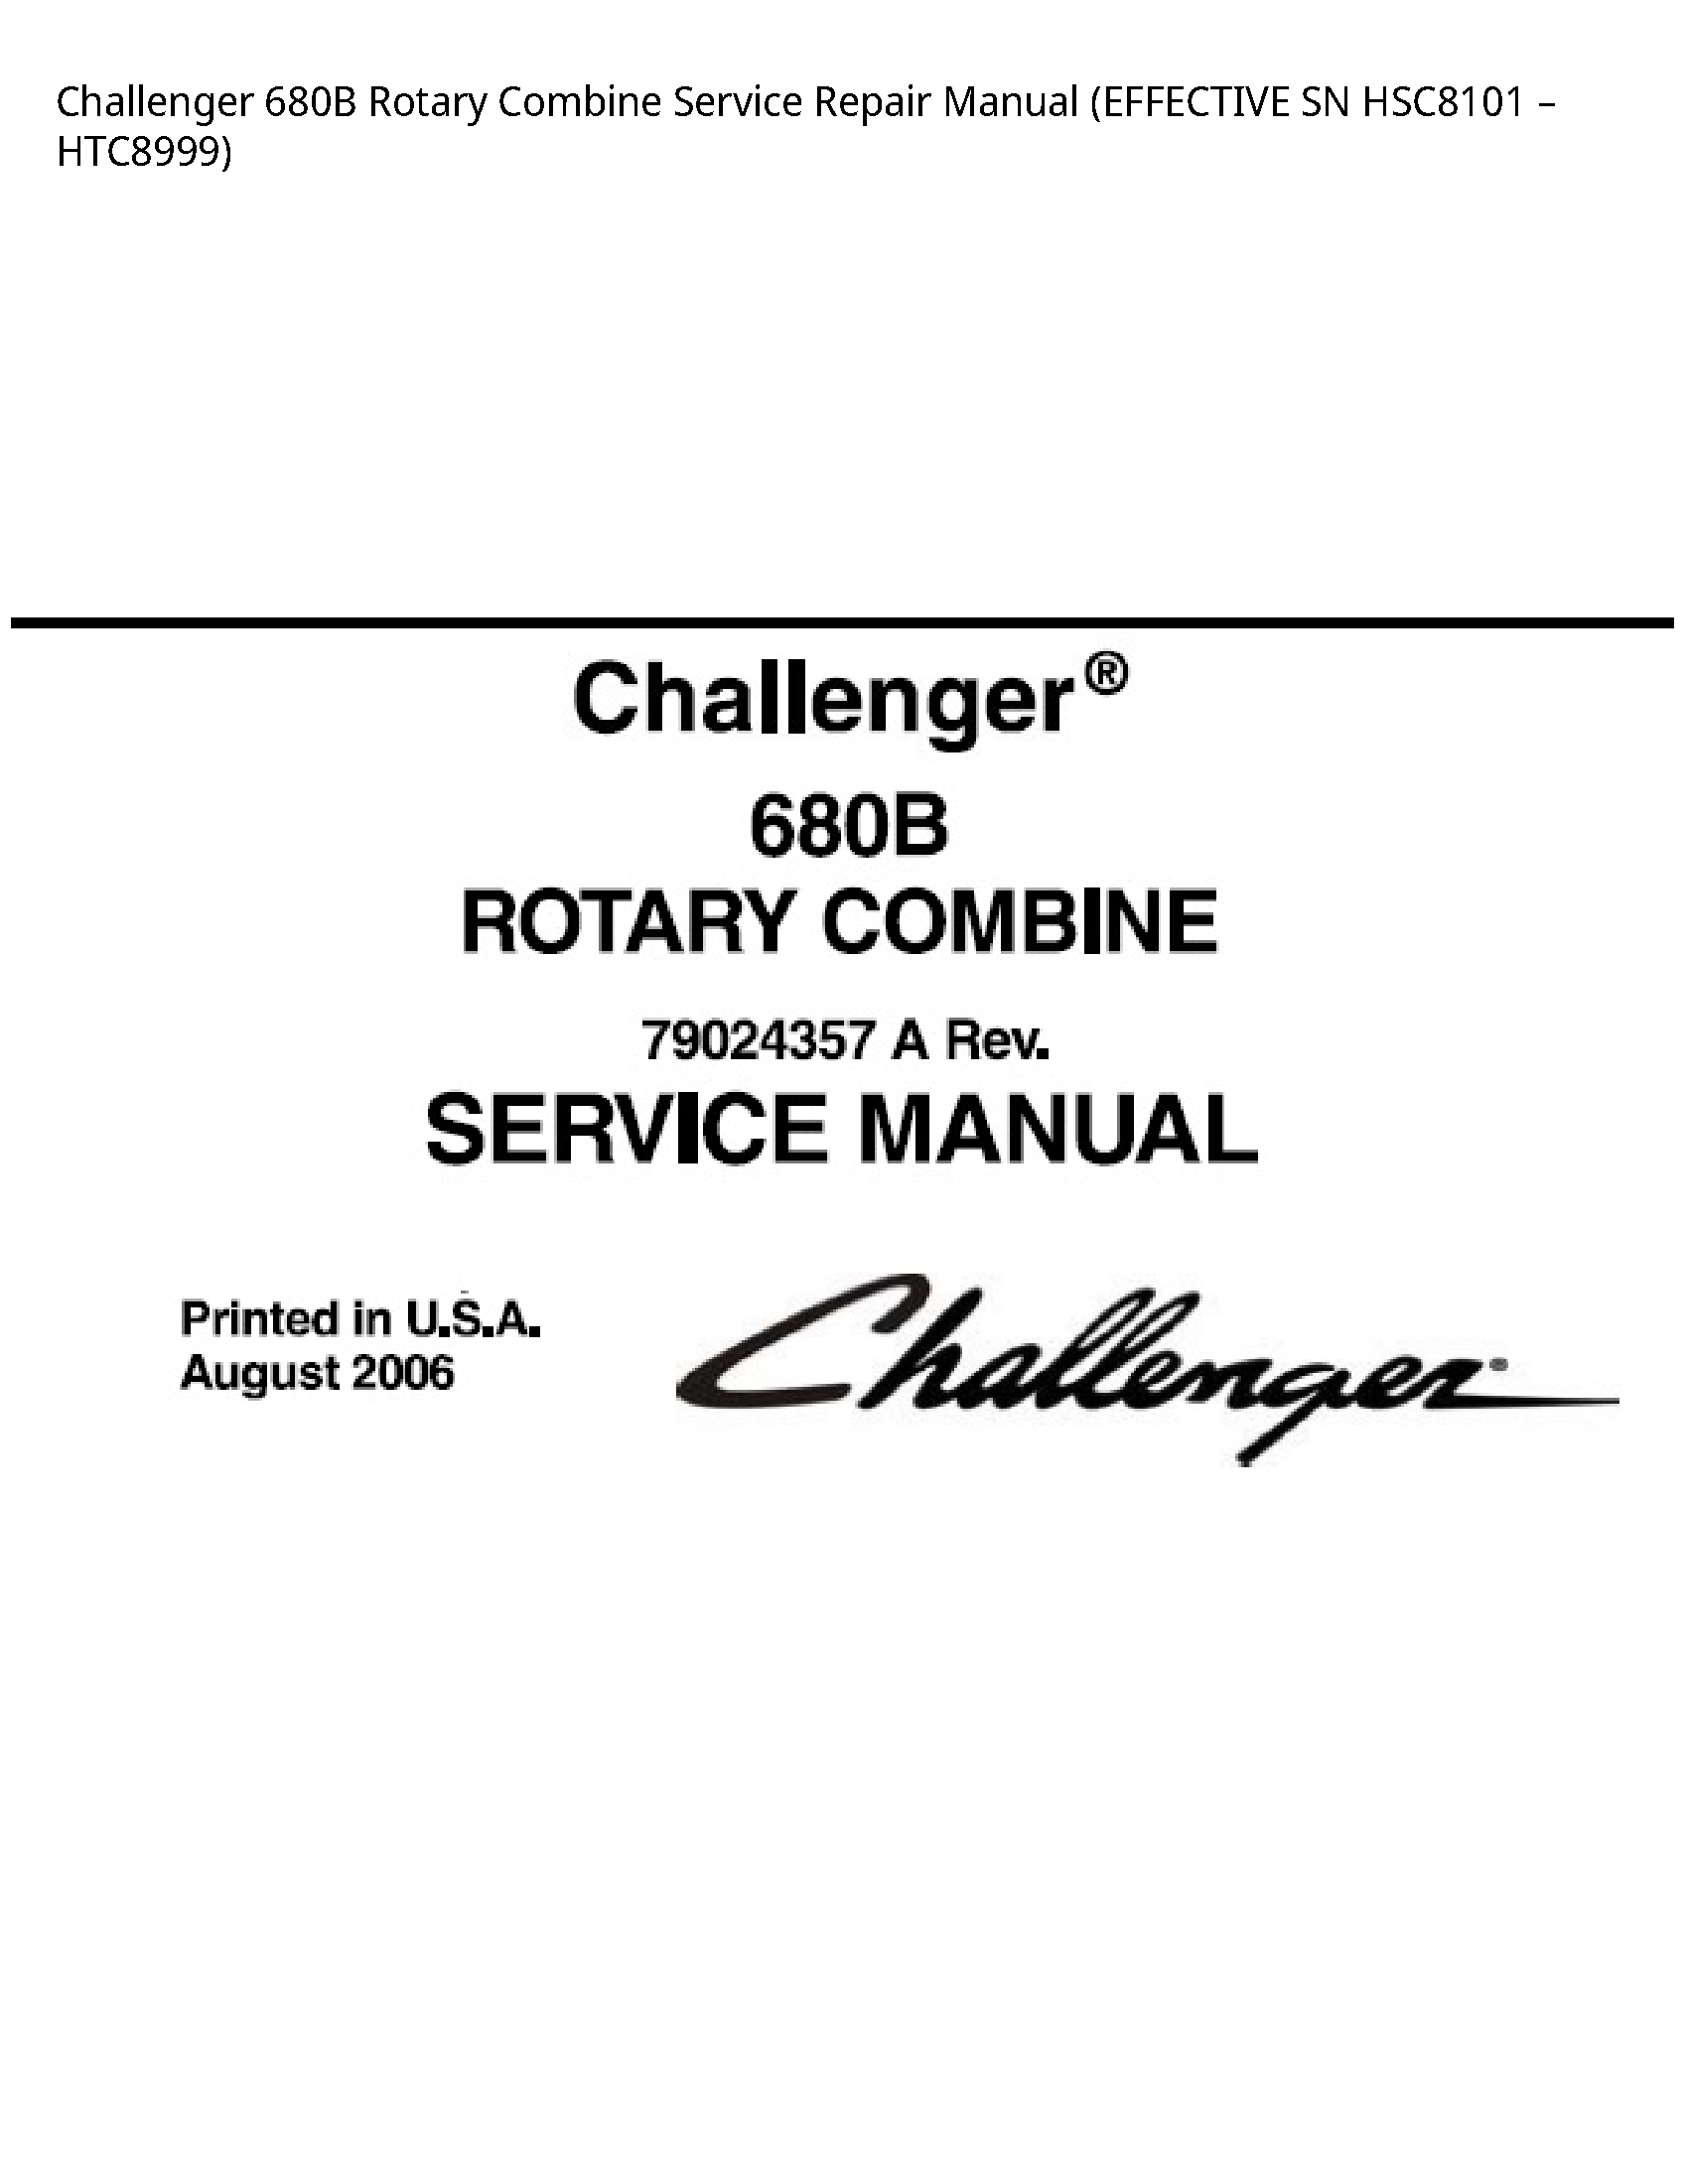 Challenger 680B Rotary Combine manual